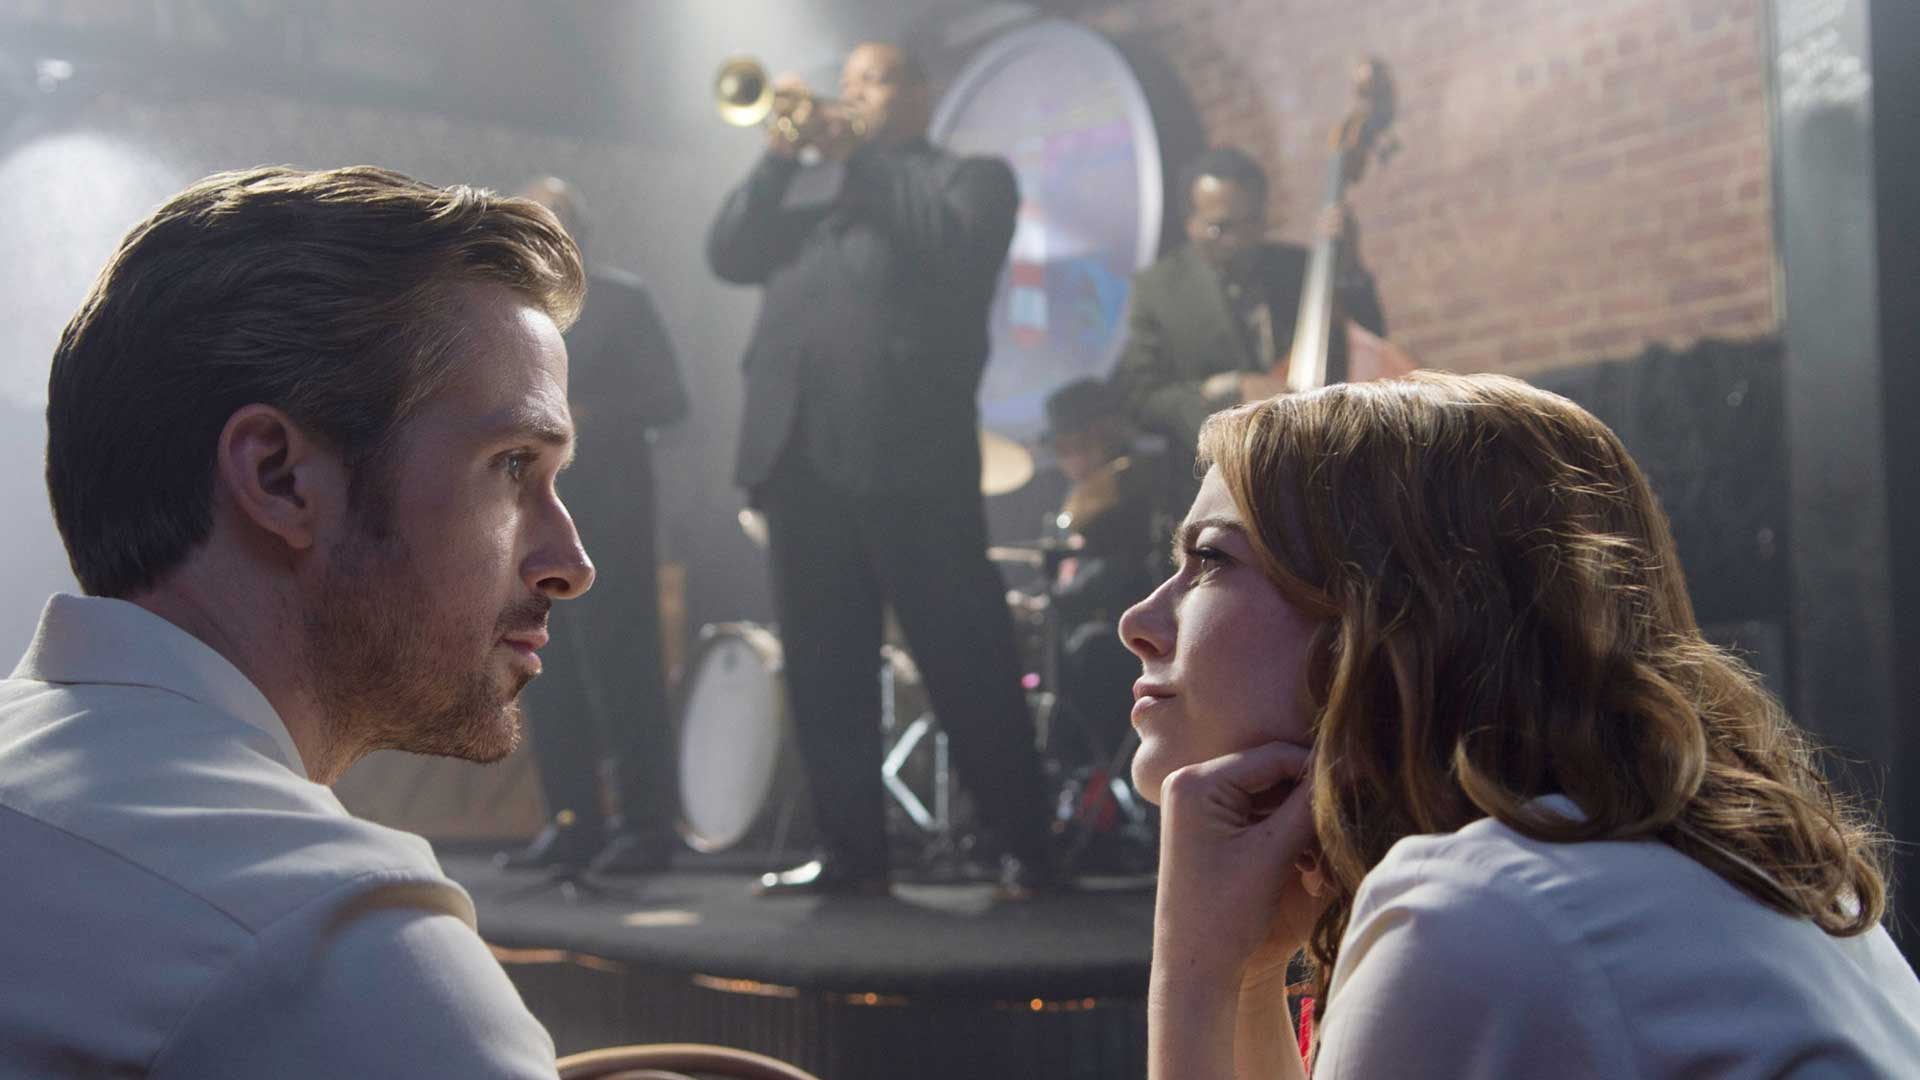 Ryan Gosling and Emma Stone look at each other in front of musician Damien Chassell in La La Land